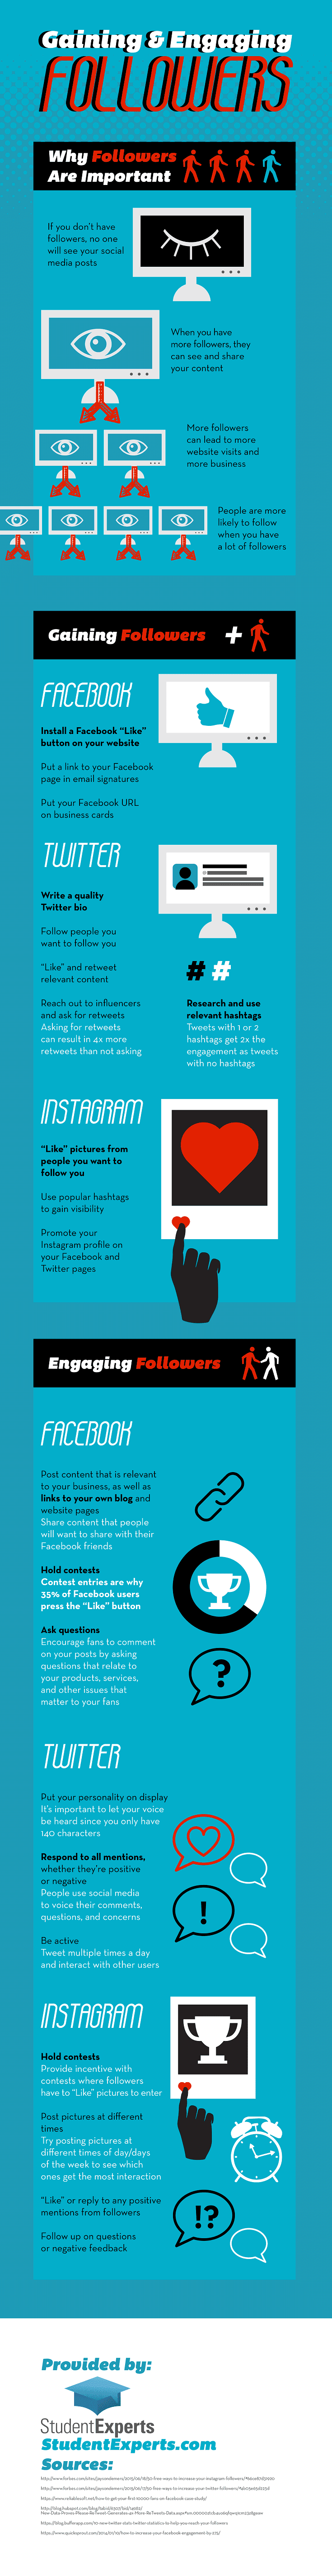 Gaining and Engaging Followers on Social Media – Infographic